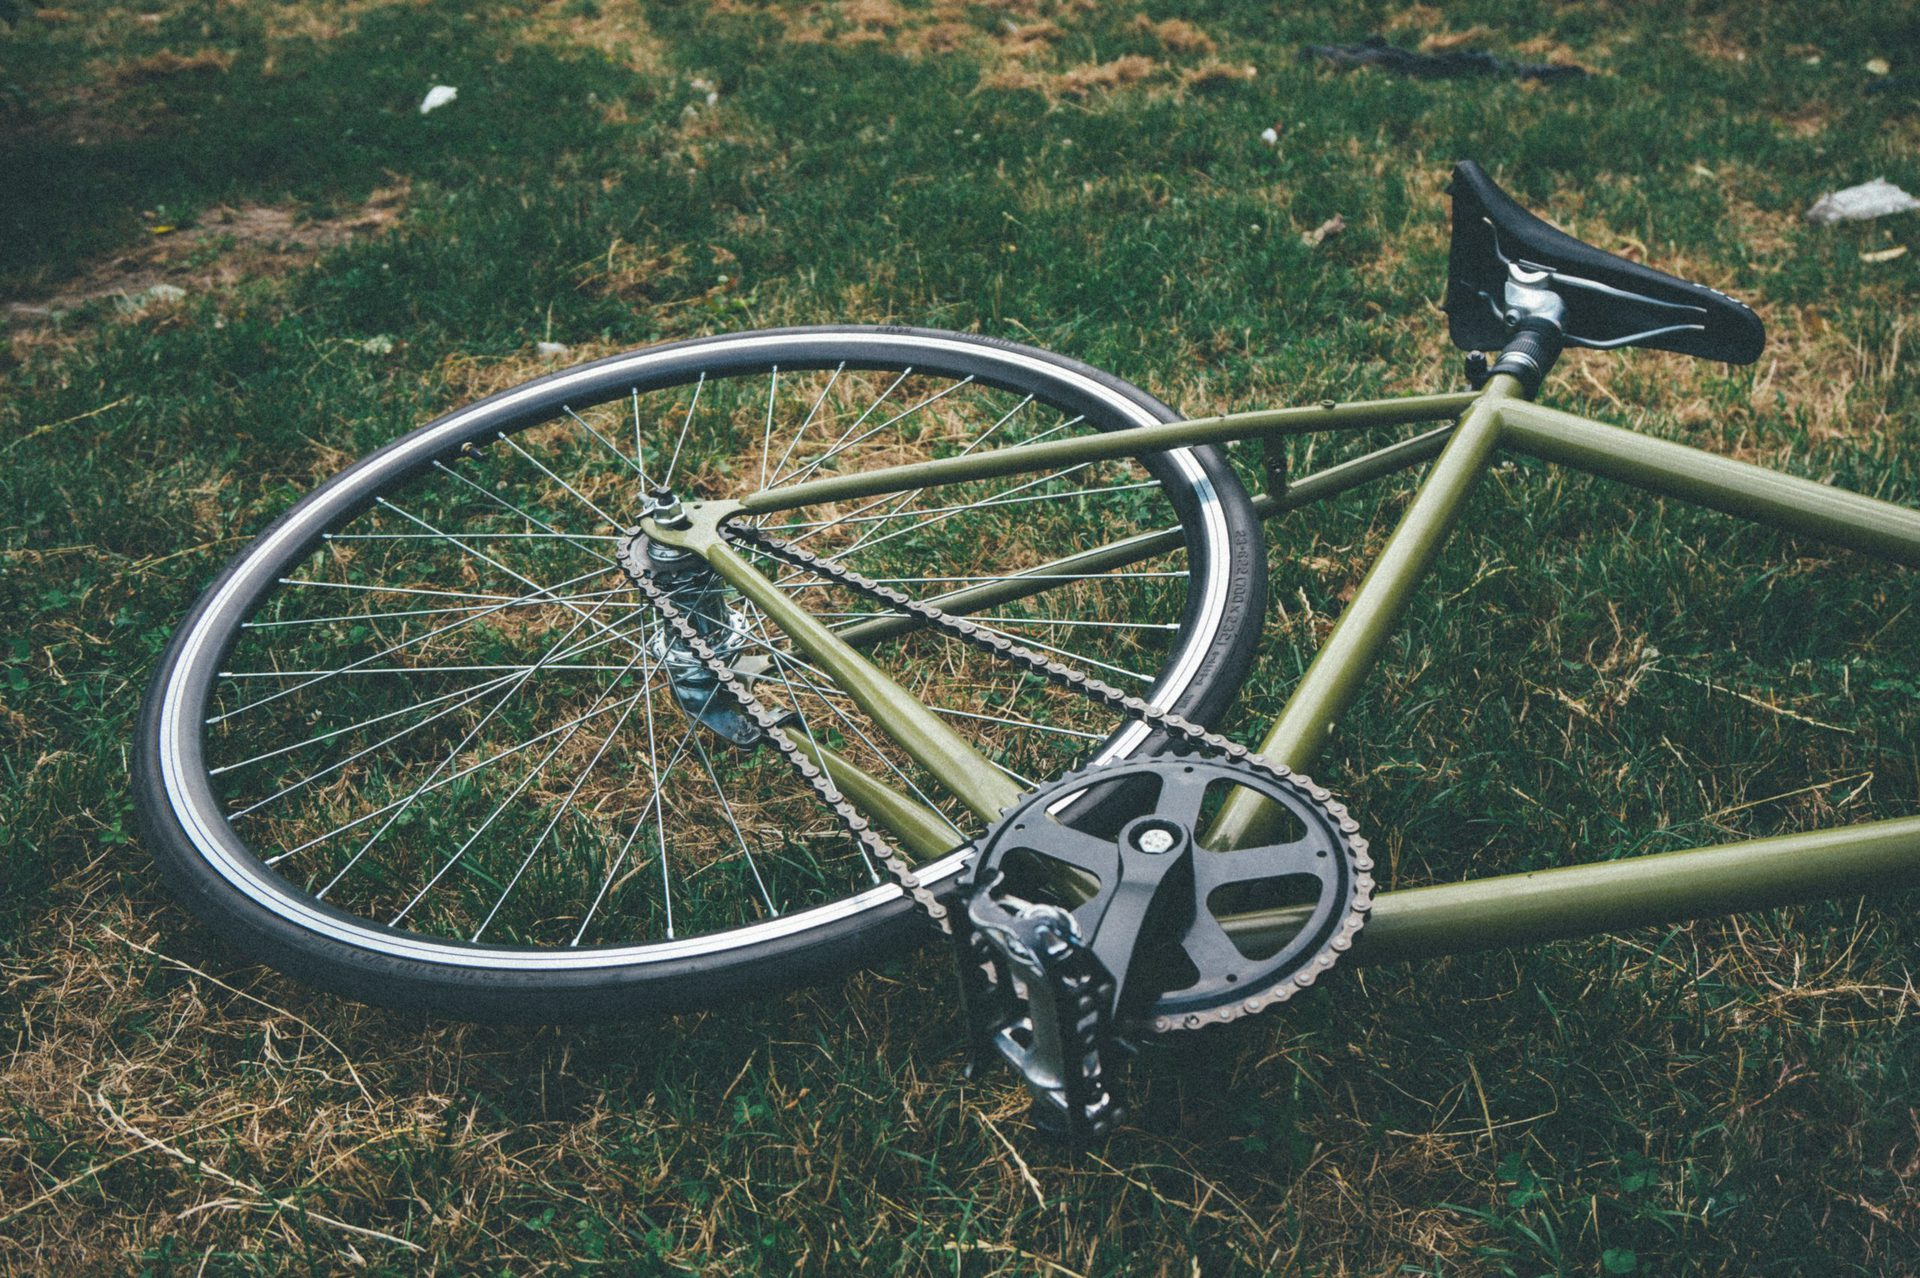 Cyclist suffers minor injuries after being clipped by vehicle Saturday